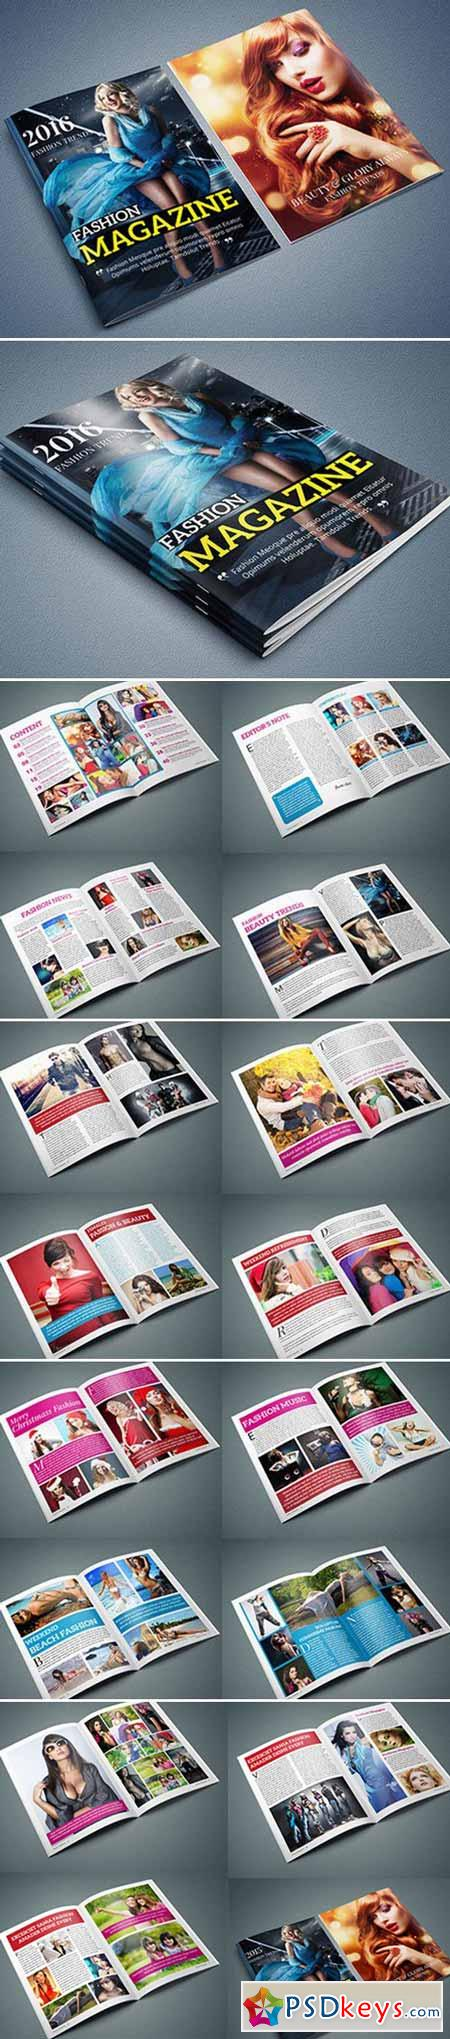 InDesign - 40 Page Magazine Template 462217